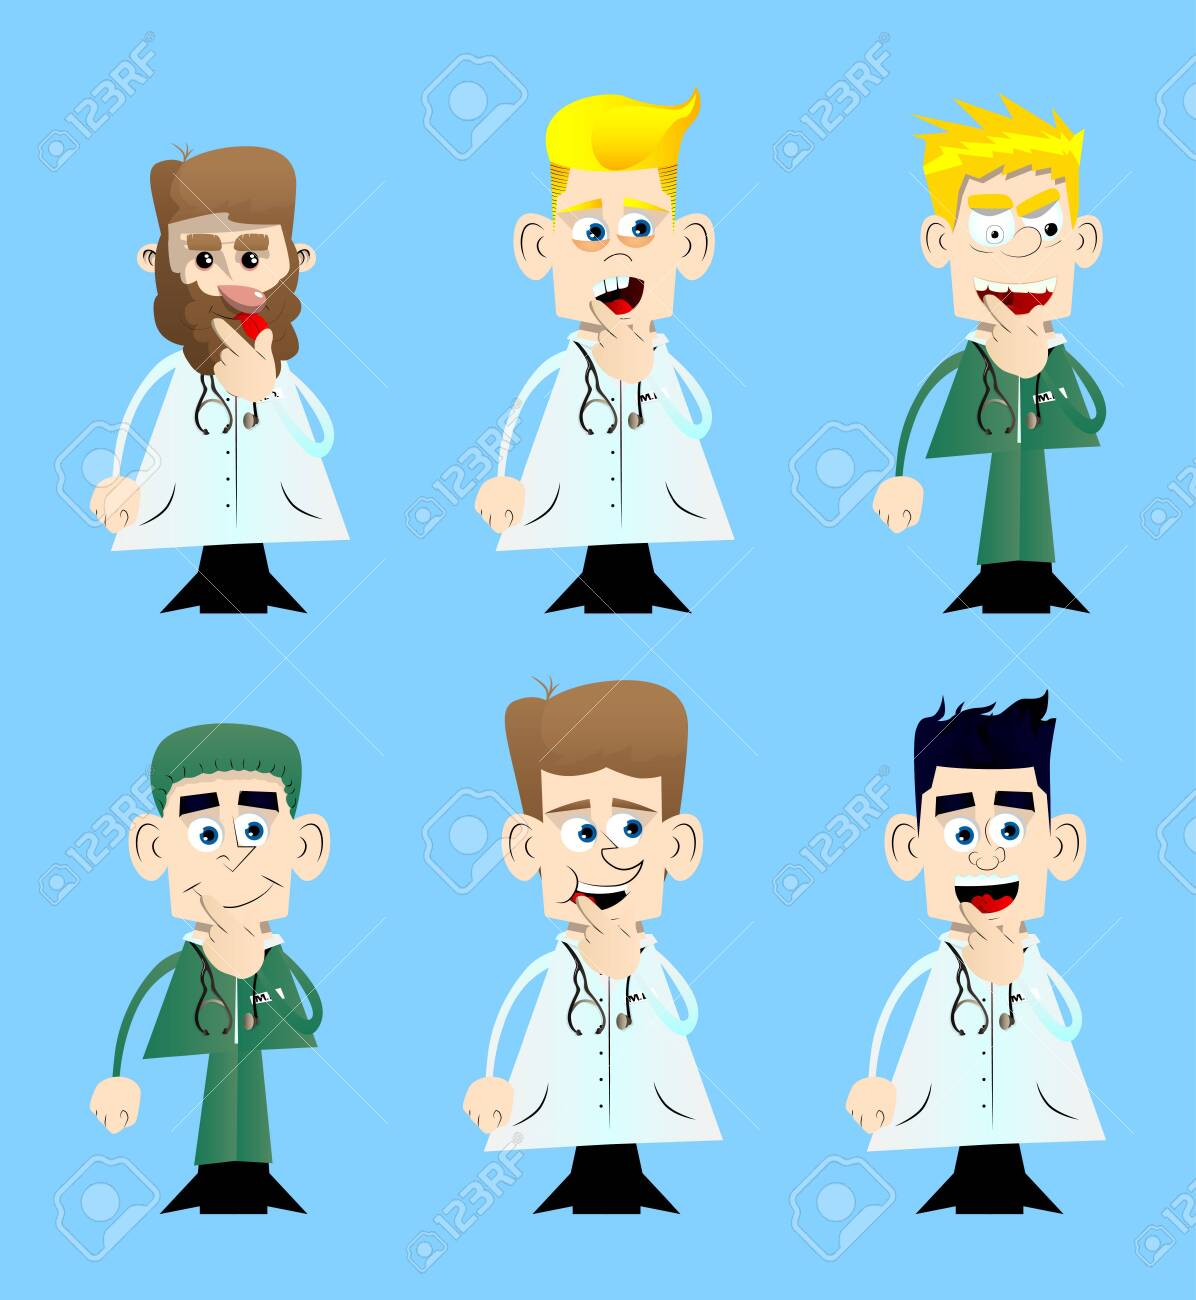 Funny cartoon doctor holding finger front of his mouth. Vector illustration. - 157235037